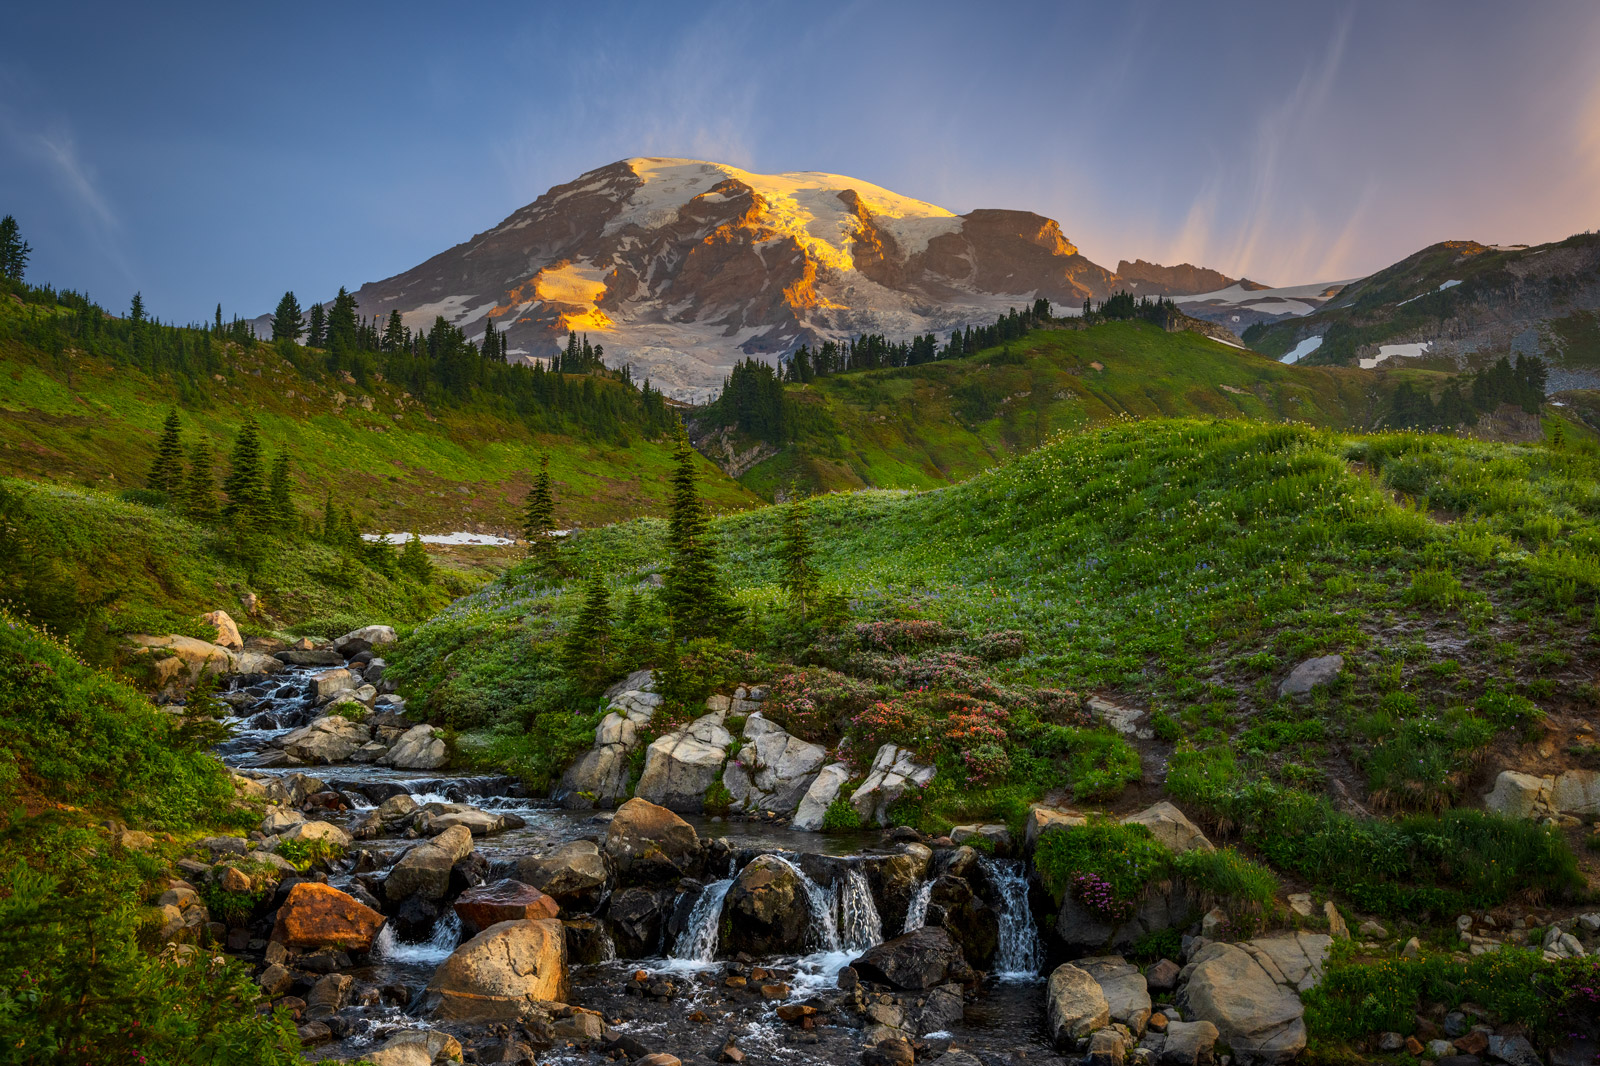 Washington, Rainier, Mount Rainier, Stream, Skyline Trail, Flowers